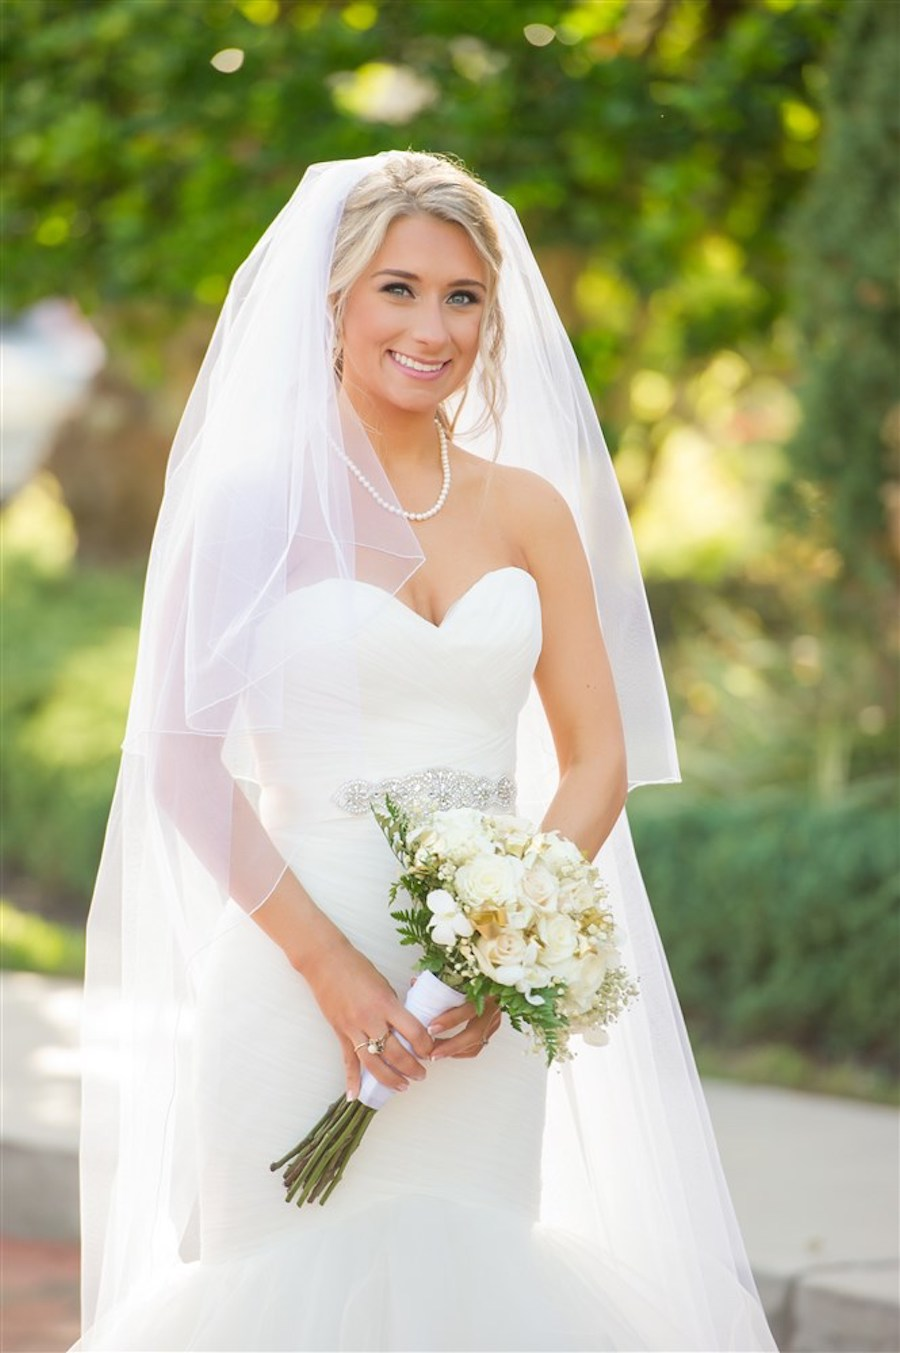 Outdoor Garden Bridal Portrait with Long-Stemmed Ivory Bouquet with Greenery wearing Sweetheart Mermaid Wedding Dress, Pearls, and Long Veil   Tampa Wedding Photographer Andi Diamond Photography